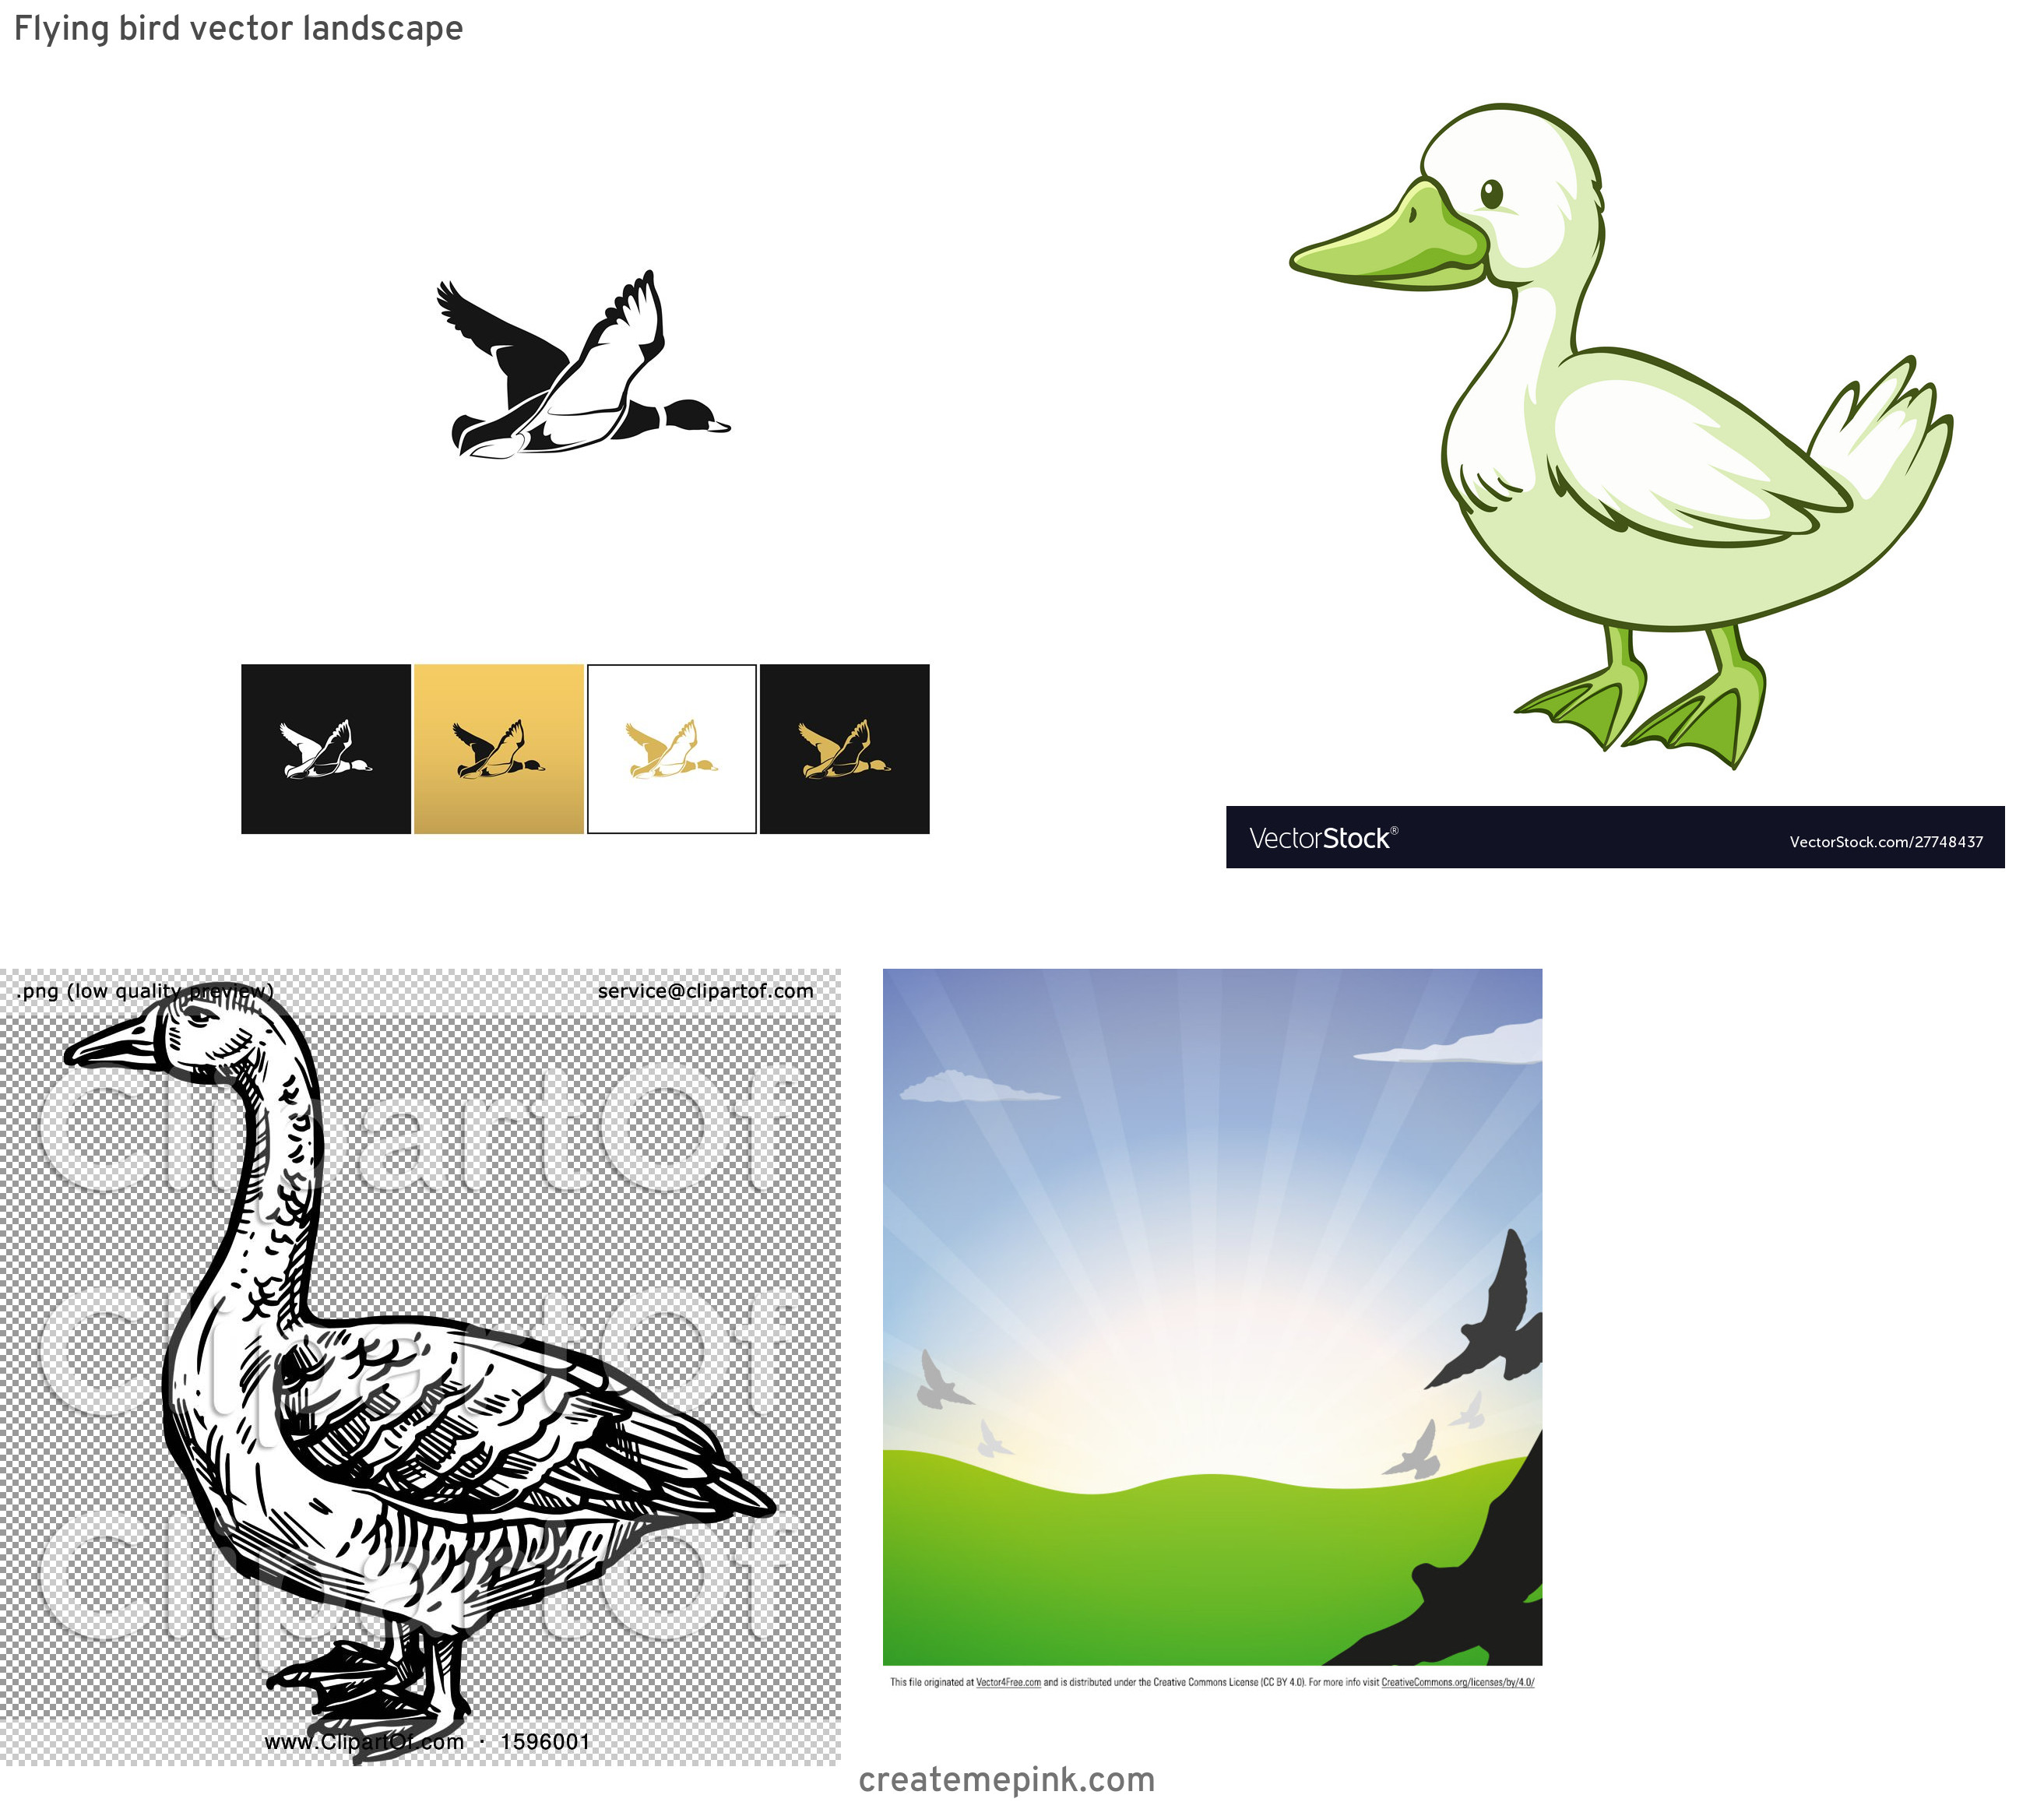 Flying Ducks Scene Vector: Flying Bird Vector Landscape